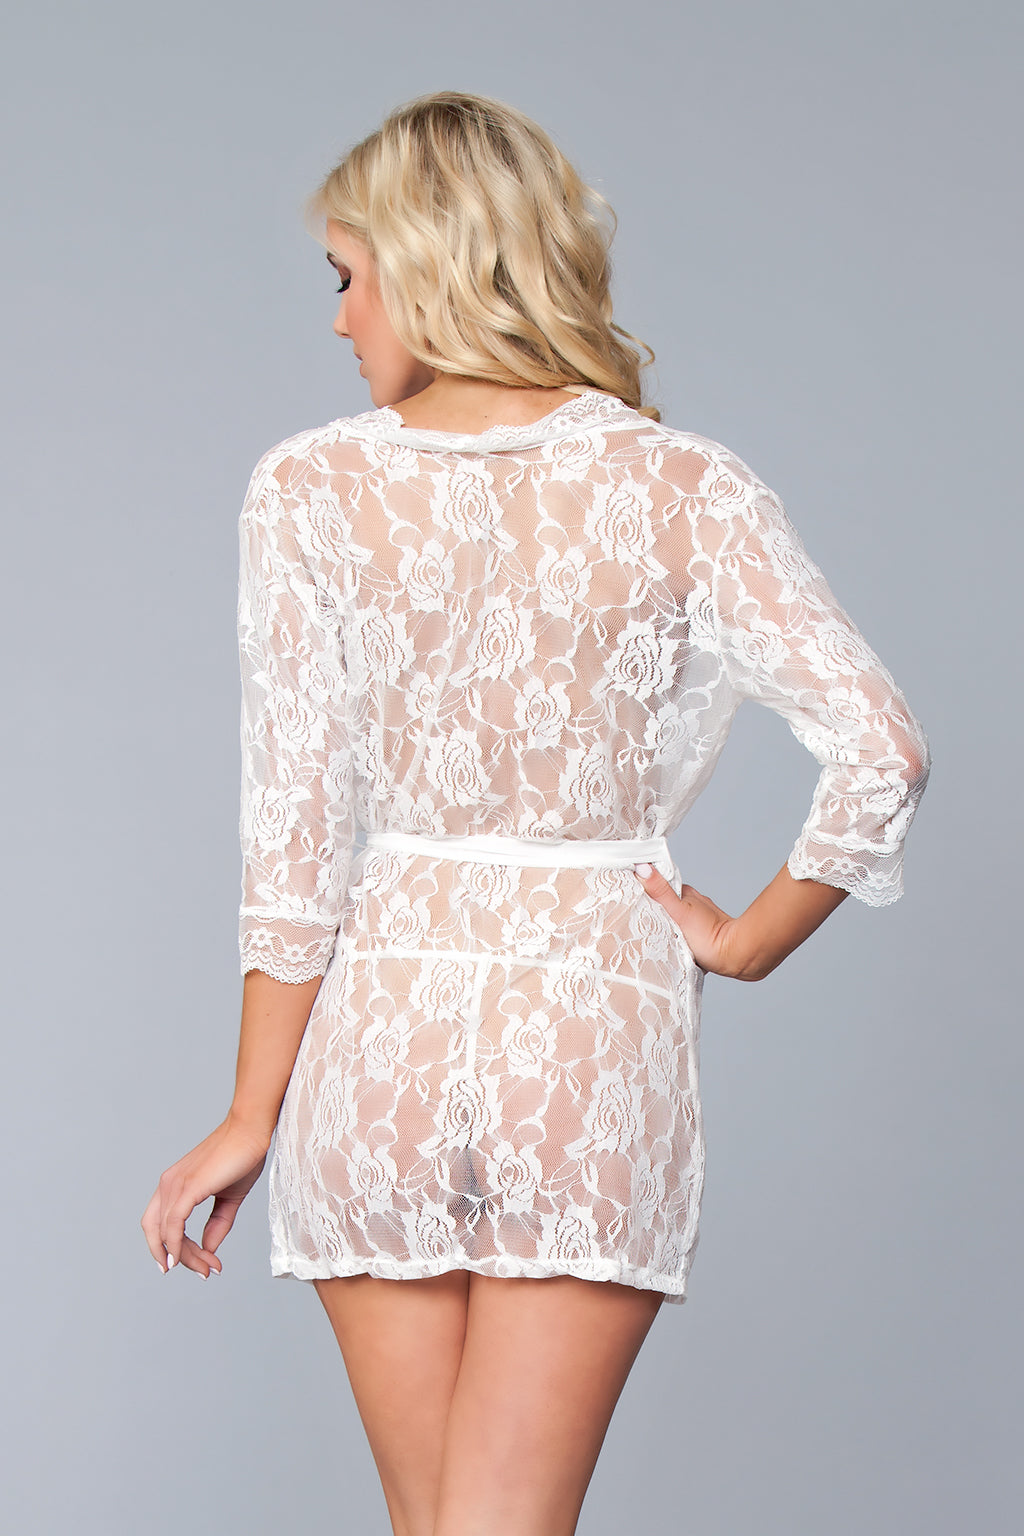 LALA TRENDS Be Wicked Lola Over Lace Robe White Lingerie $28.95